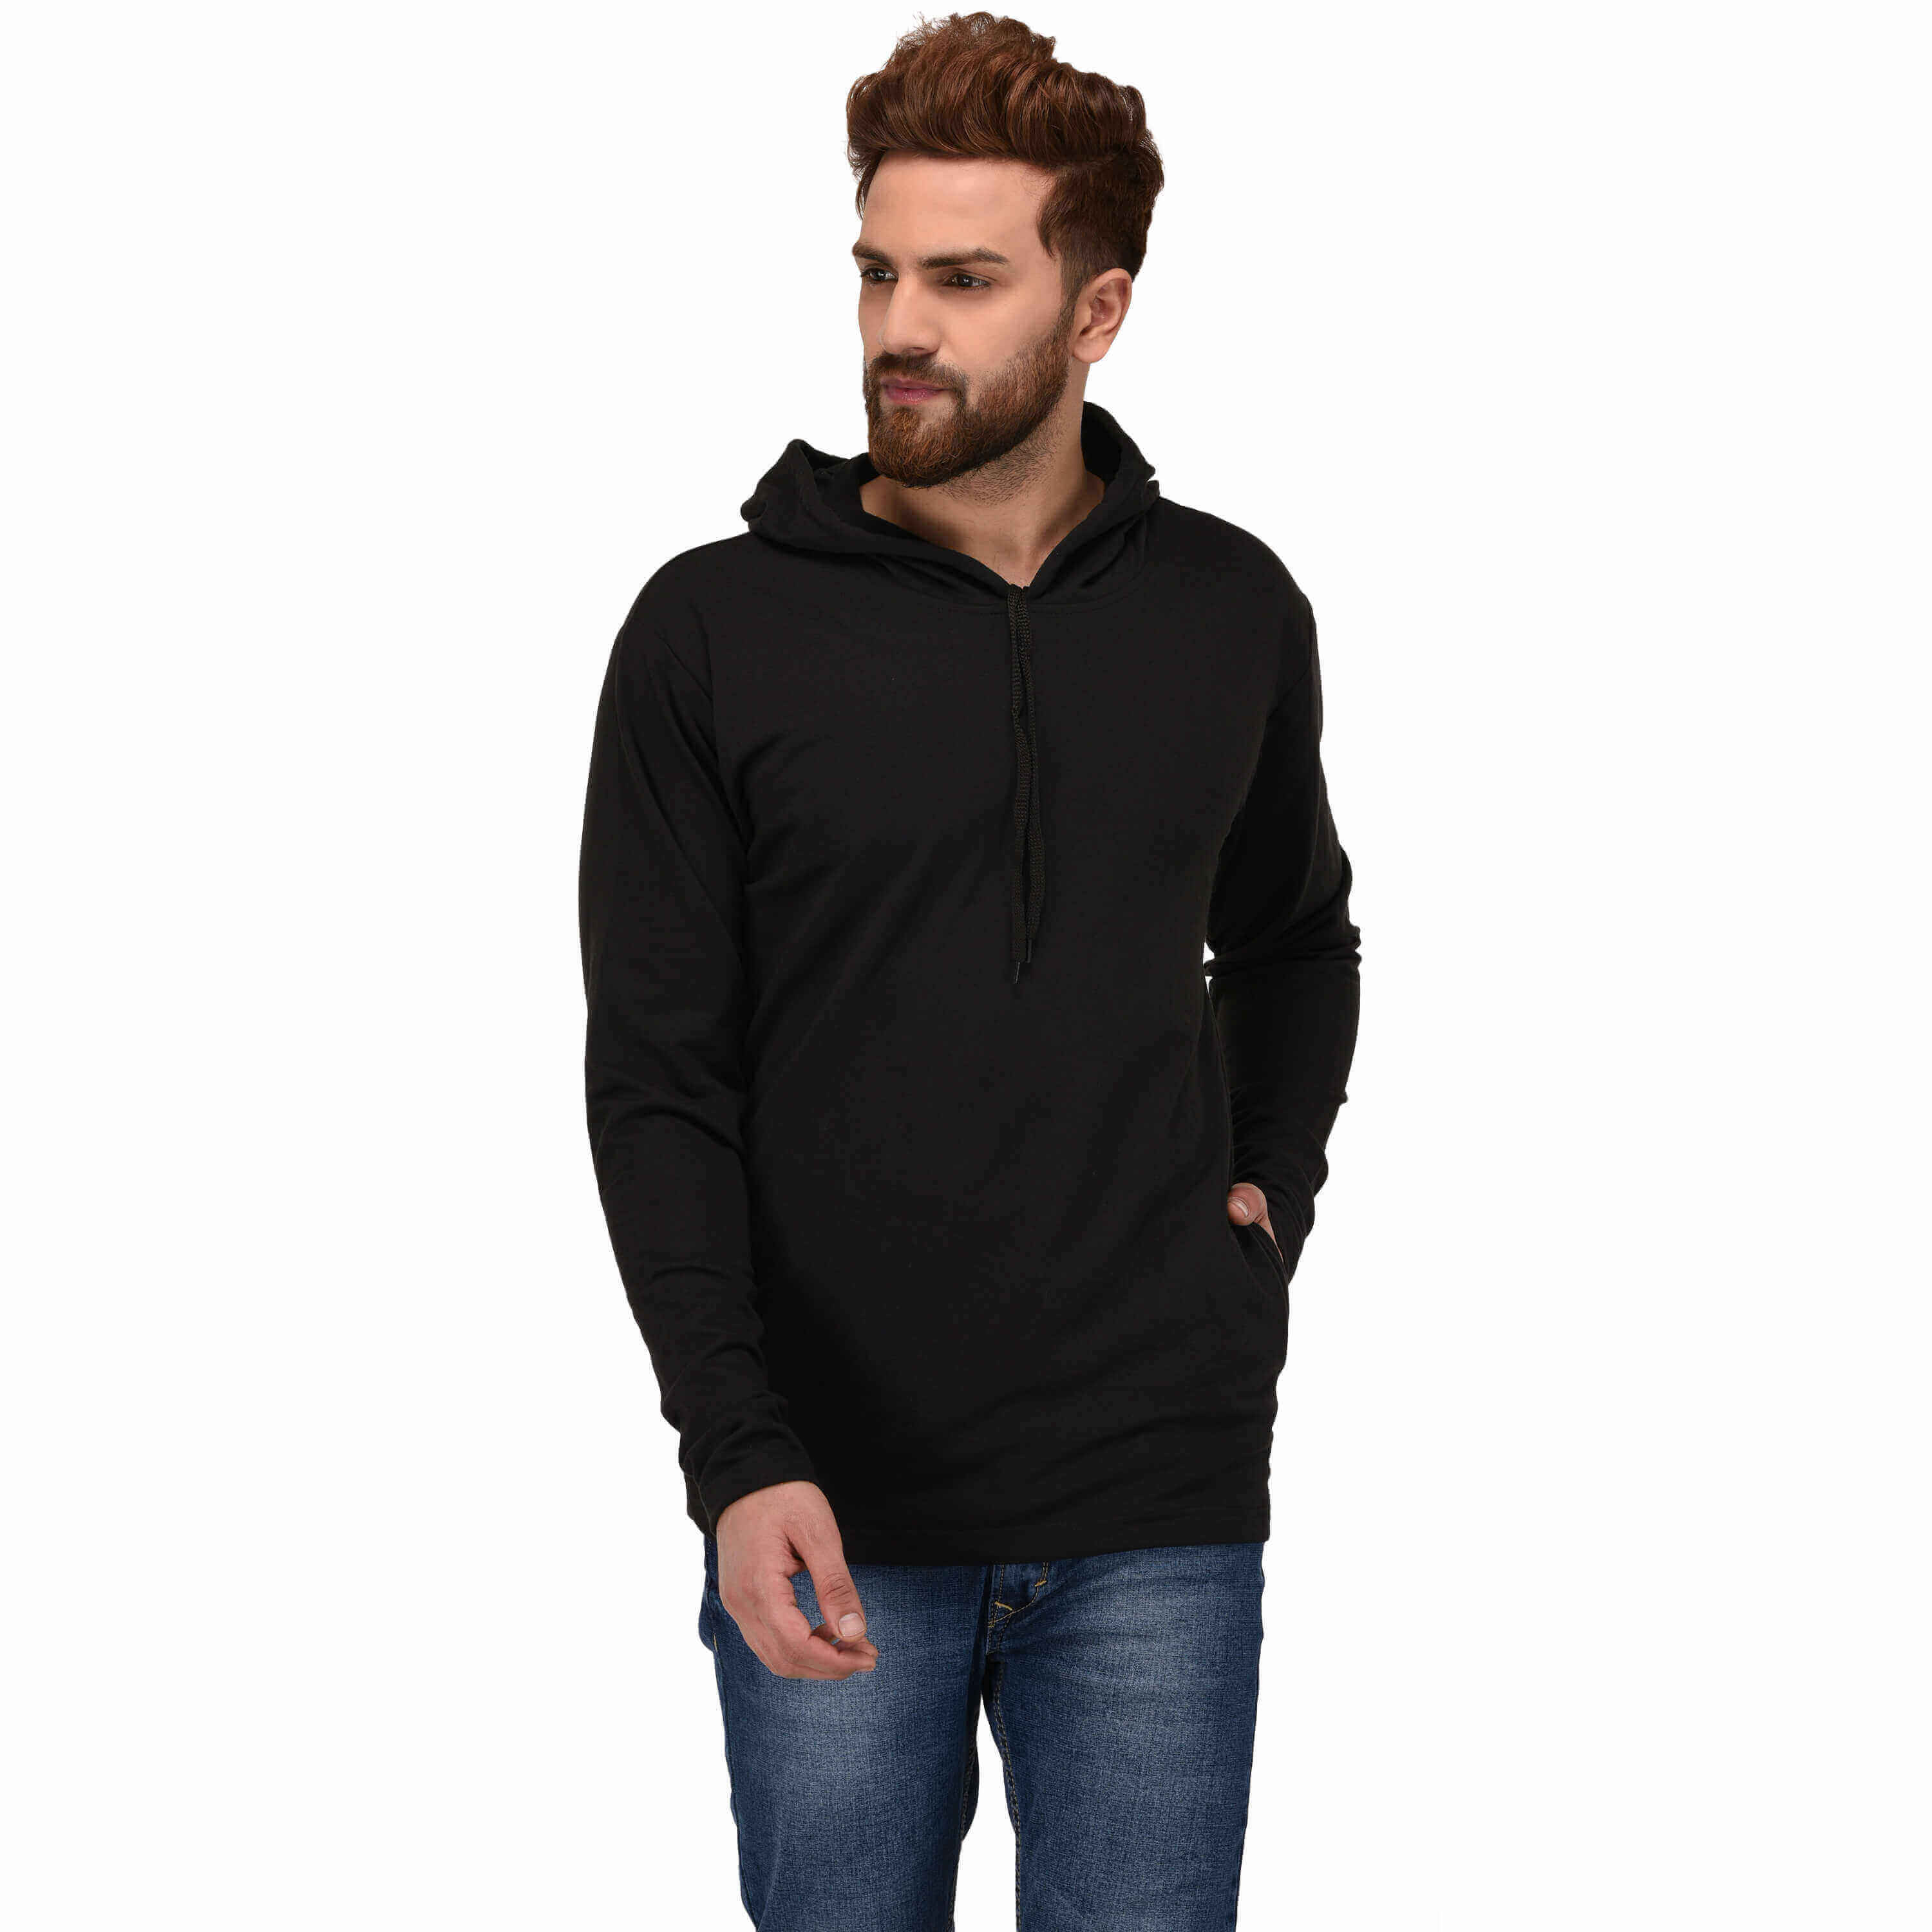 Sports Hoodies Manufacturers in Nanded